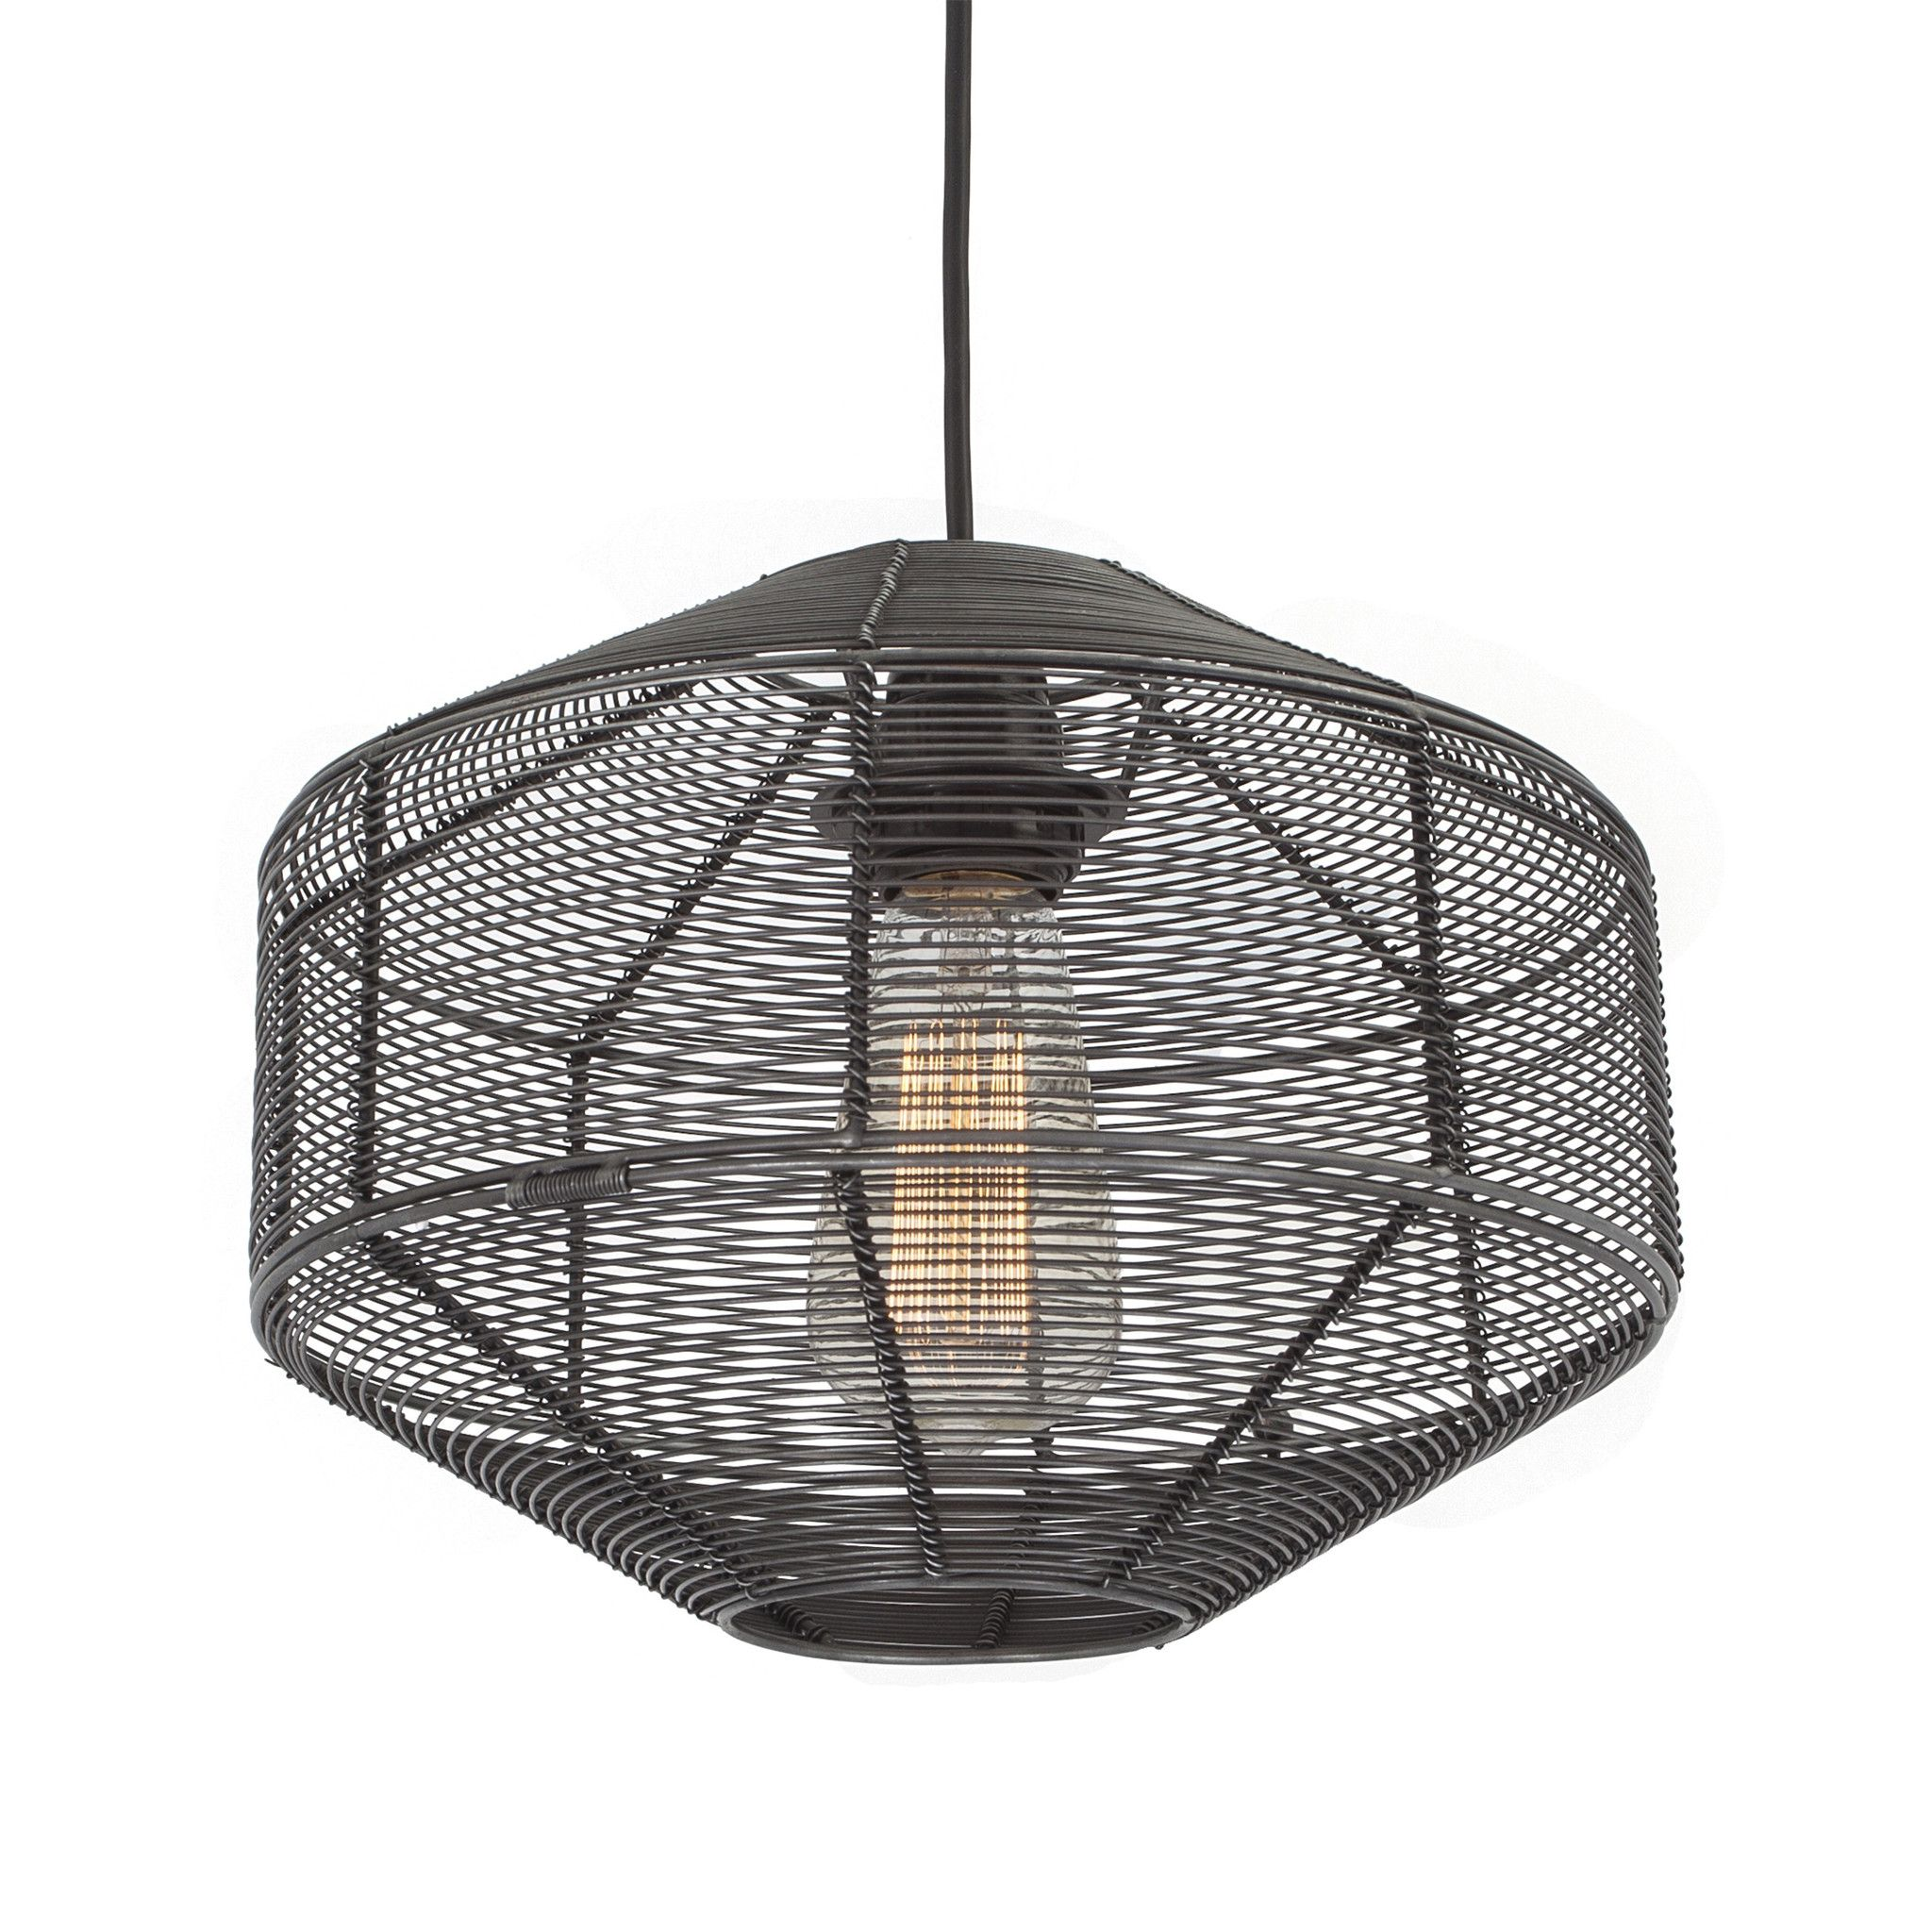 Pad Lifestyle Soho Round Wire Cage Pendant Light: Add a unique ...